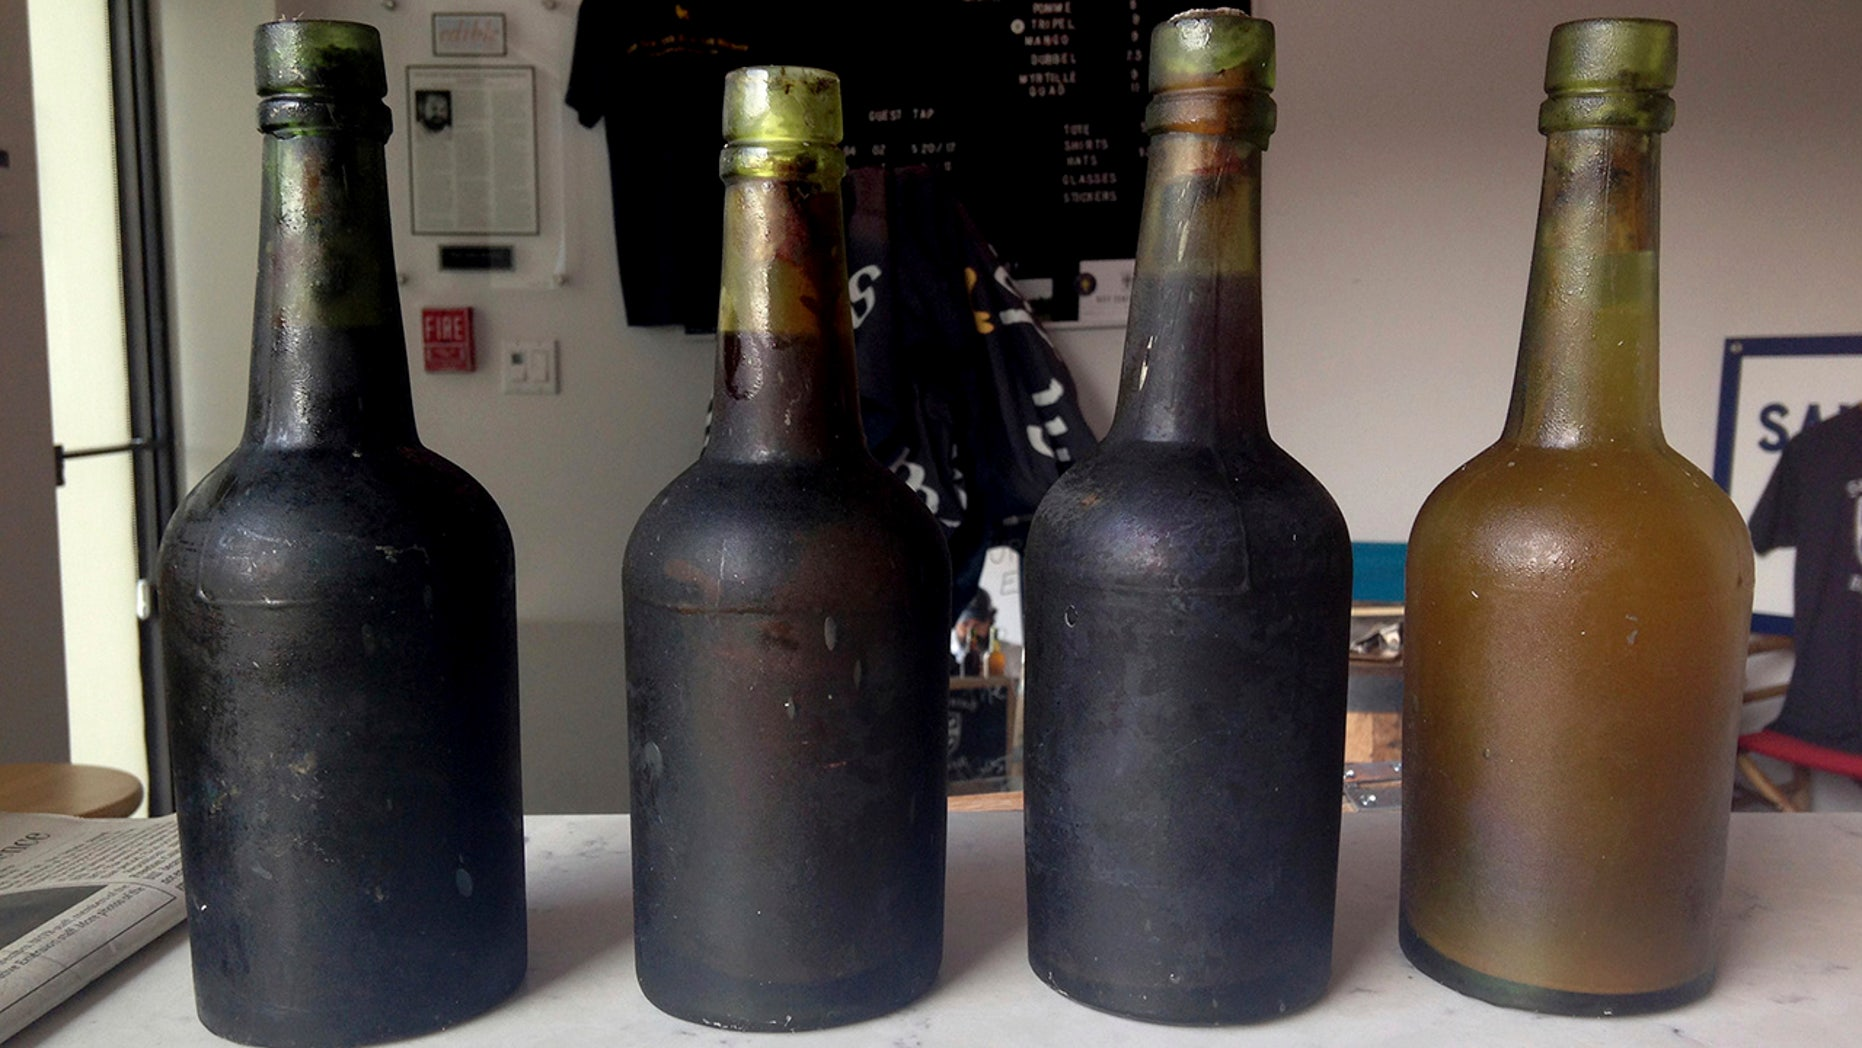 In this July 17, 2017 photo provided by Jamie Adams, four bottles recovered from the SS Oregon, a 133-year-old shipwreck, are shown at the Saint James Brewery in Holbrook, N.Y.